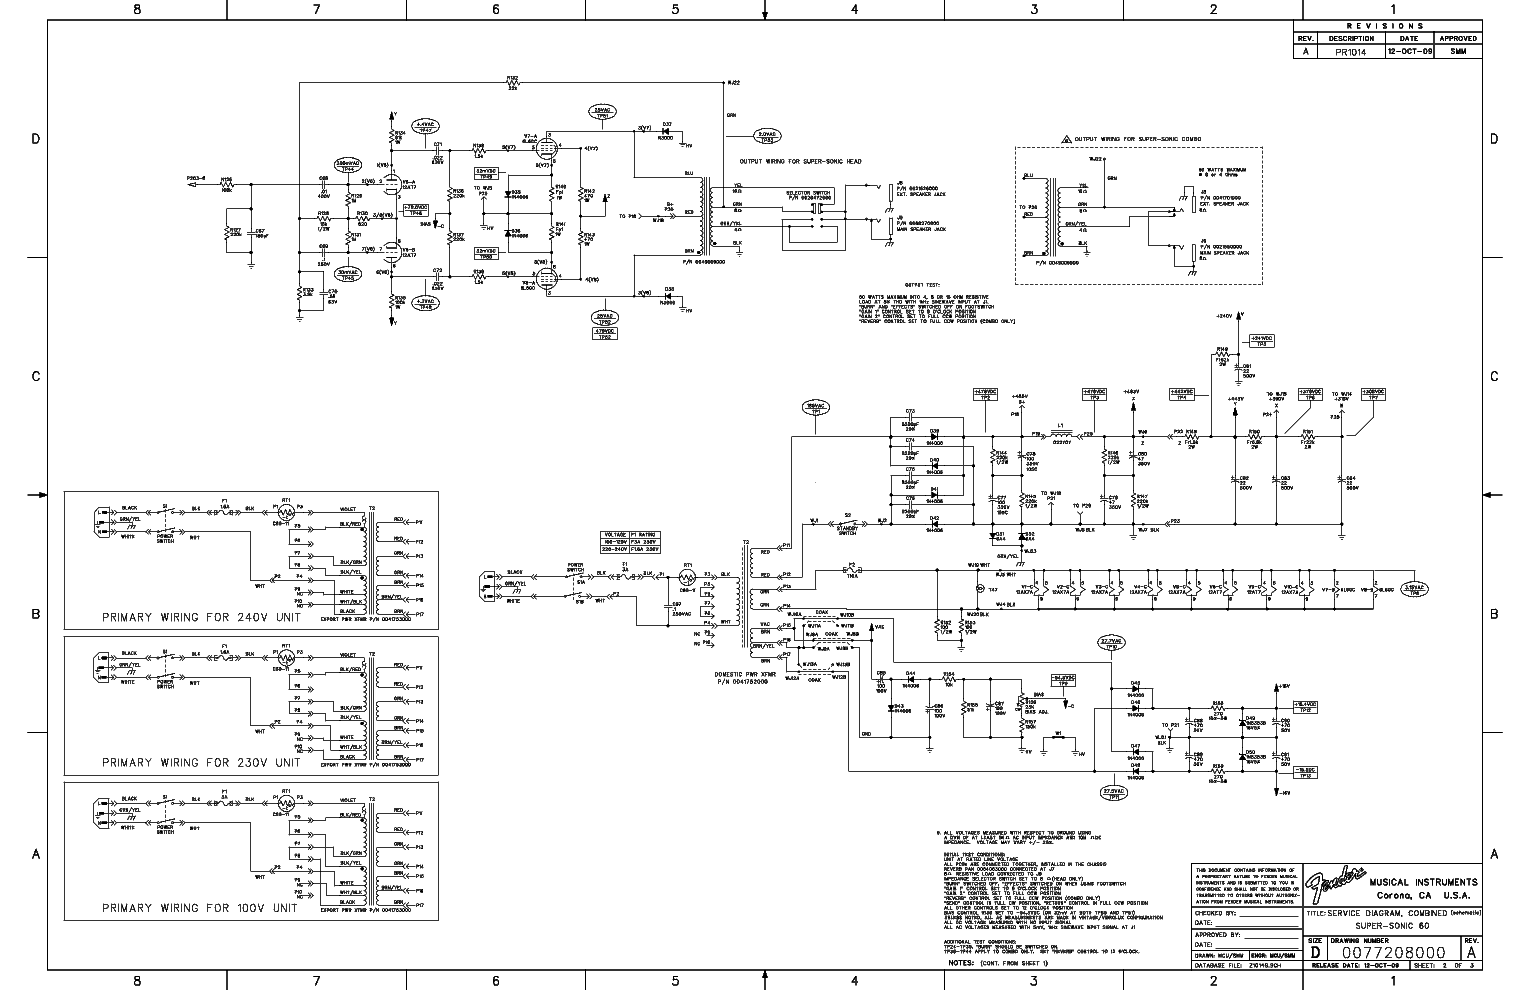 FENDER SUPER-SONIC 60 COMBO SCHEMATIC REV-A Service Manual ... on yamaha schematics, computer schematics, john deere schematics, new holland schematics, shimano reel schematics, wiper motor schematics, mercruiser outdrive schematics, heathkit schematics, tech 21 schematics, fishing reel schematics, daiwa reel schematics, vox amp schematics, spinning reel schematics, evinrude schematics, engine schematics, gretsch schematics, akai schematics, valco schematics, line 6 schematics, car schematics,